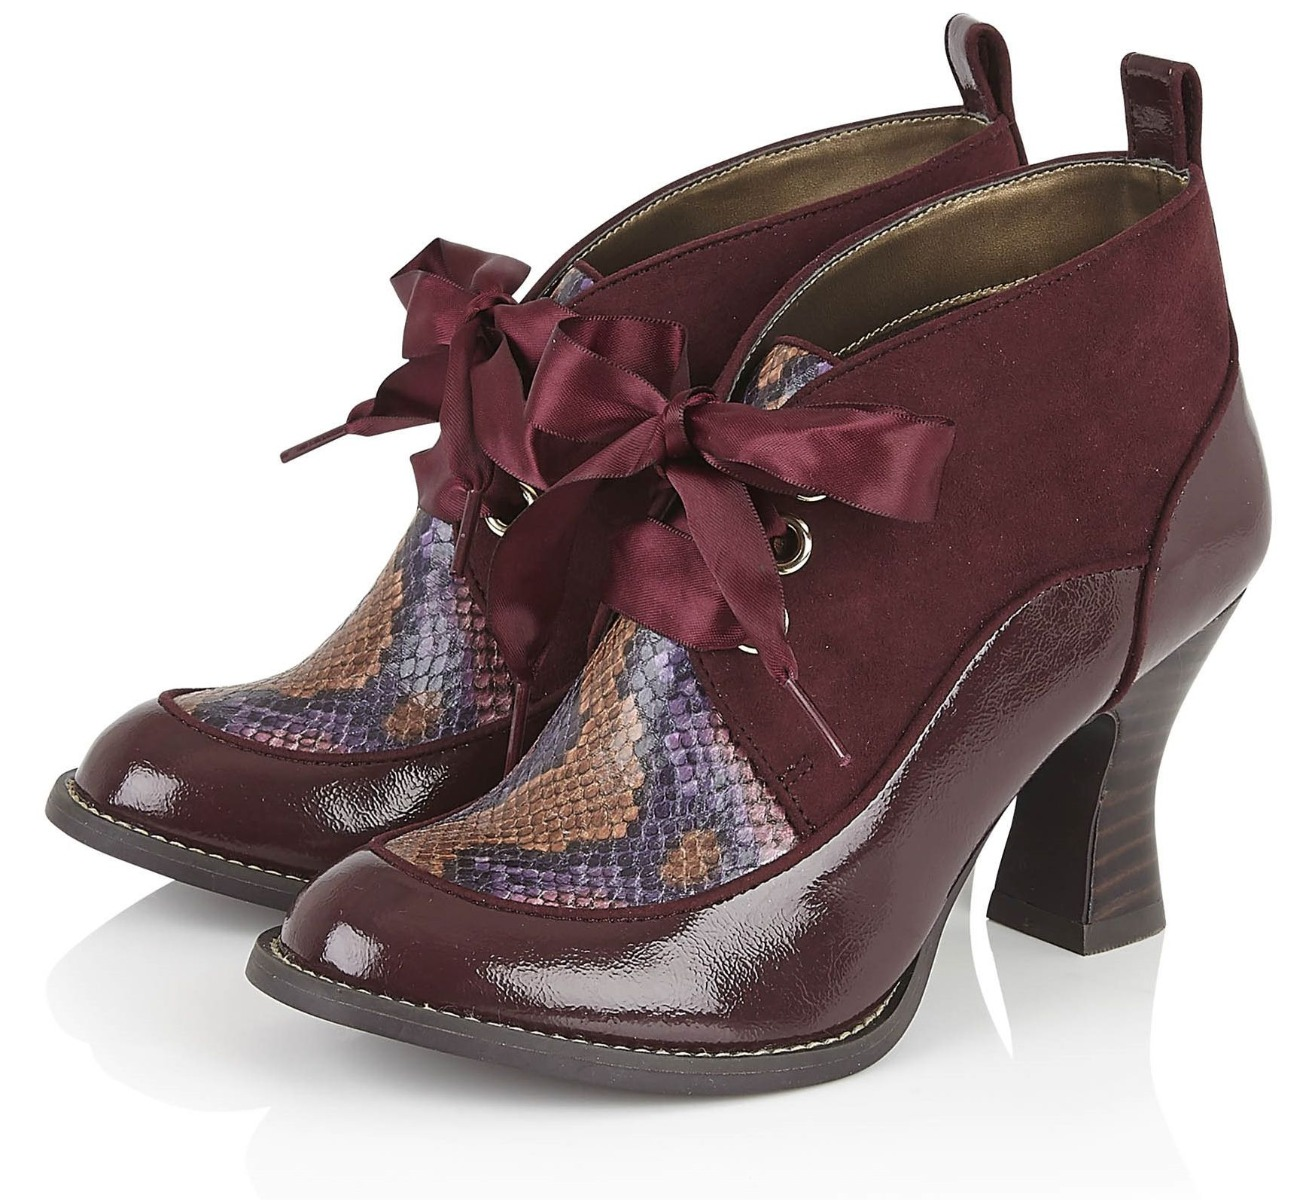 rs09350_chaussures-bottines-pin-up-retro-50-s-glam-chic-emma-bordeaux